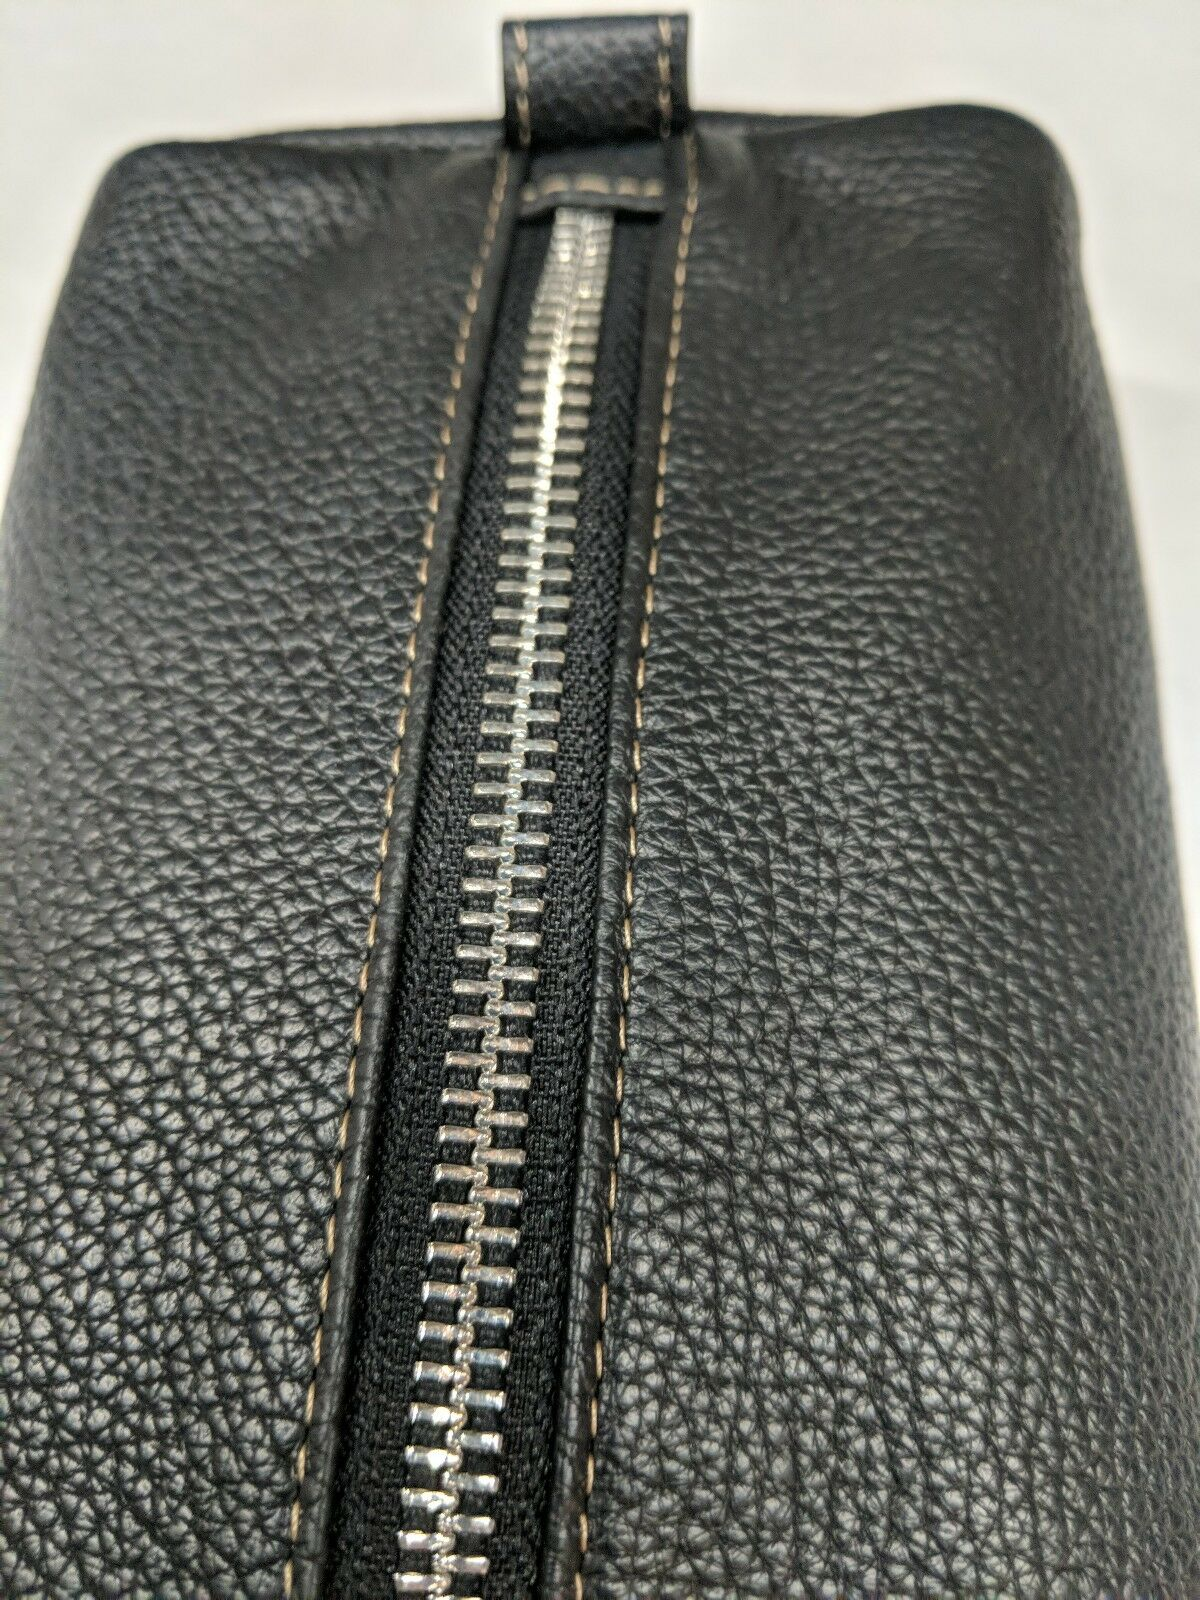 Bloomingdales Mens Leather Charger and Cord Case for Electronics Black